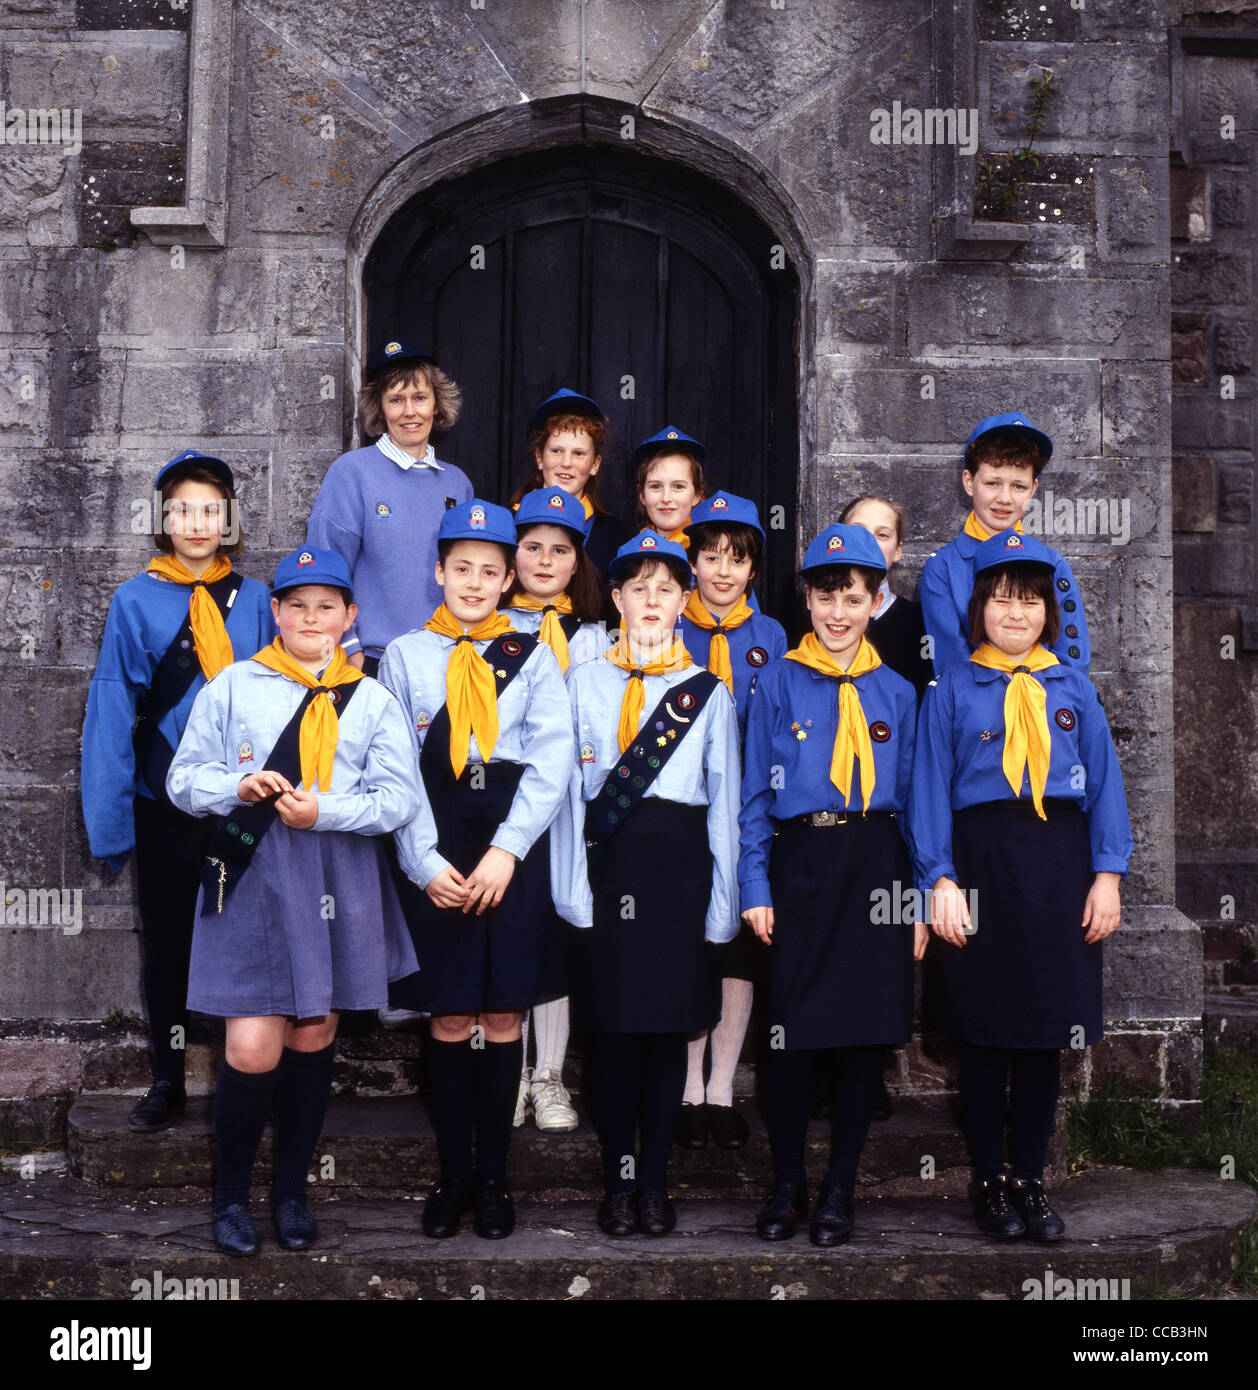 Girl guides get 'fresh' new uniform bbc news.